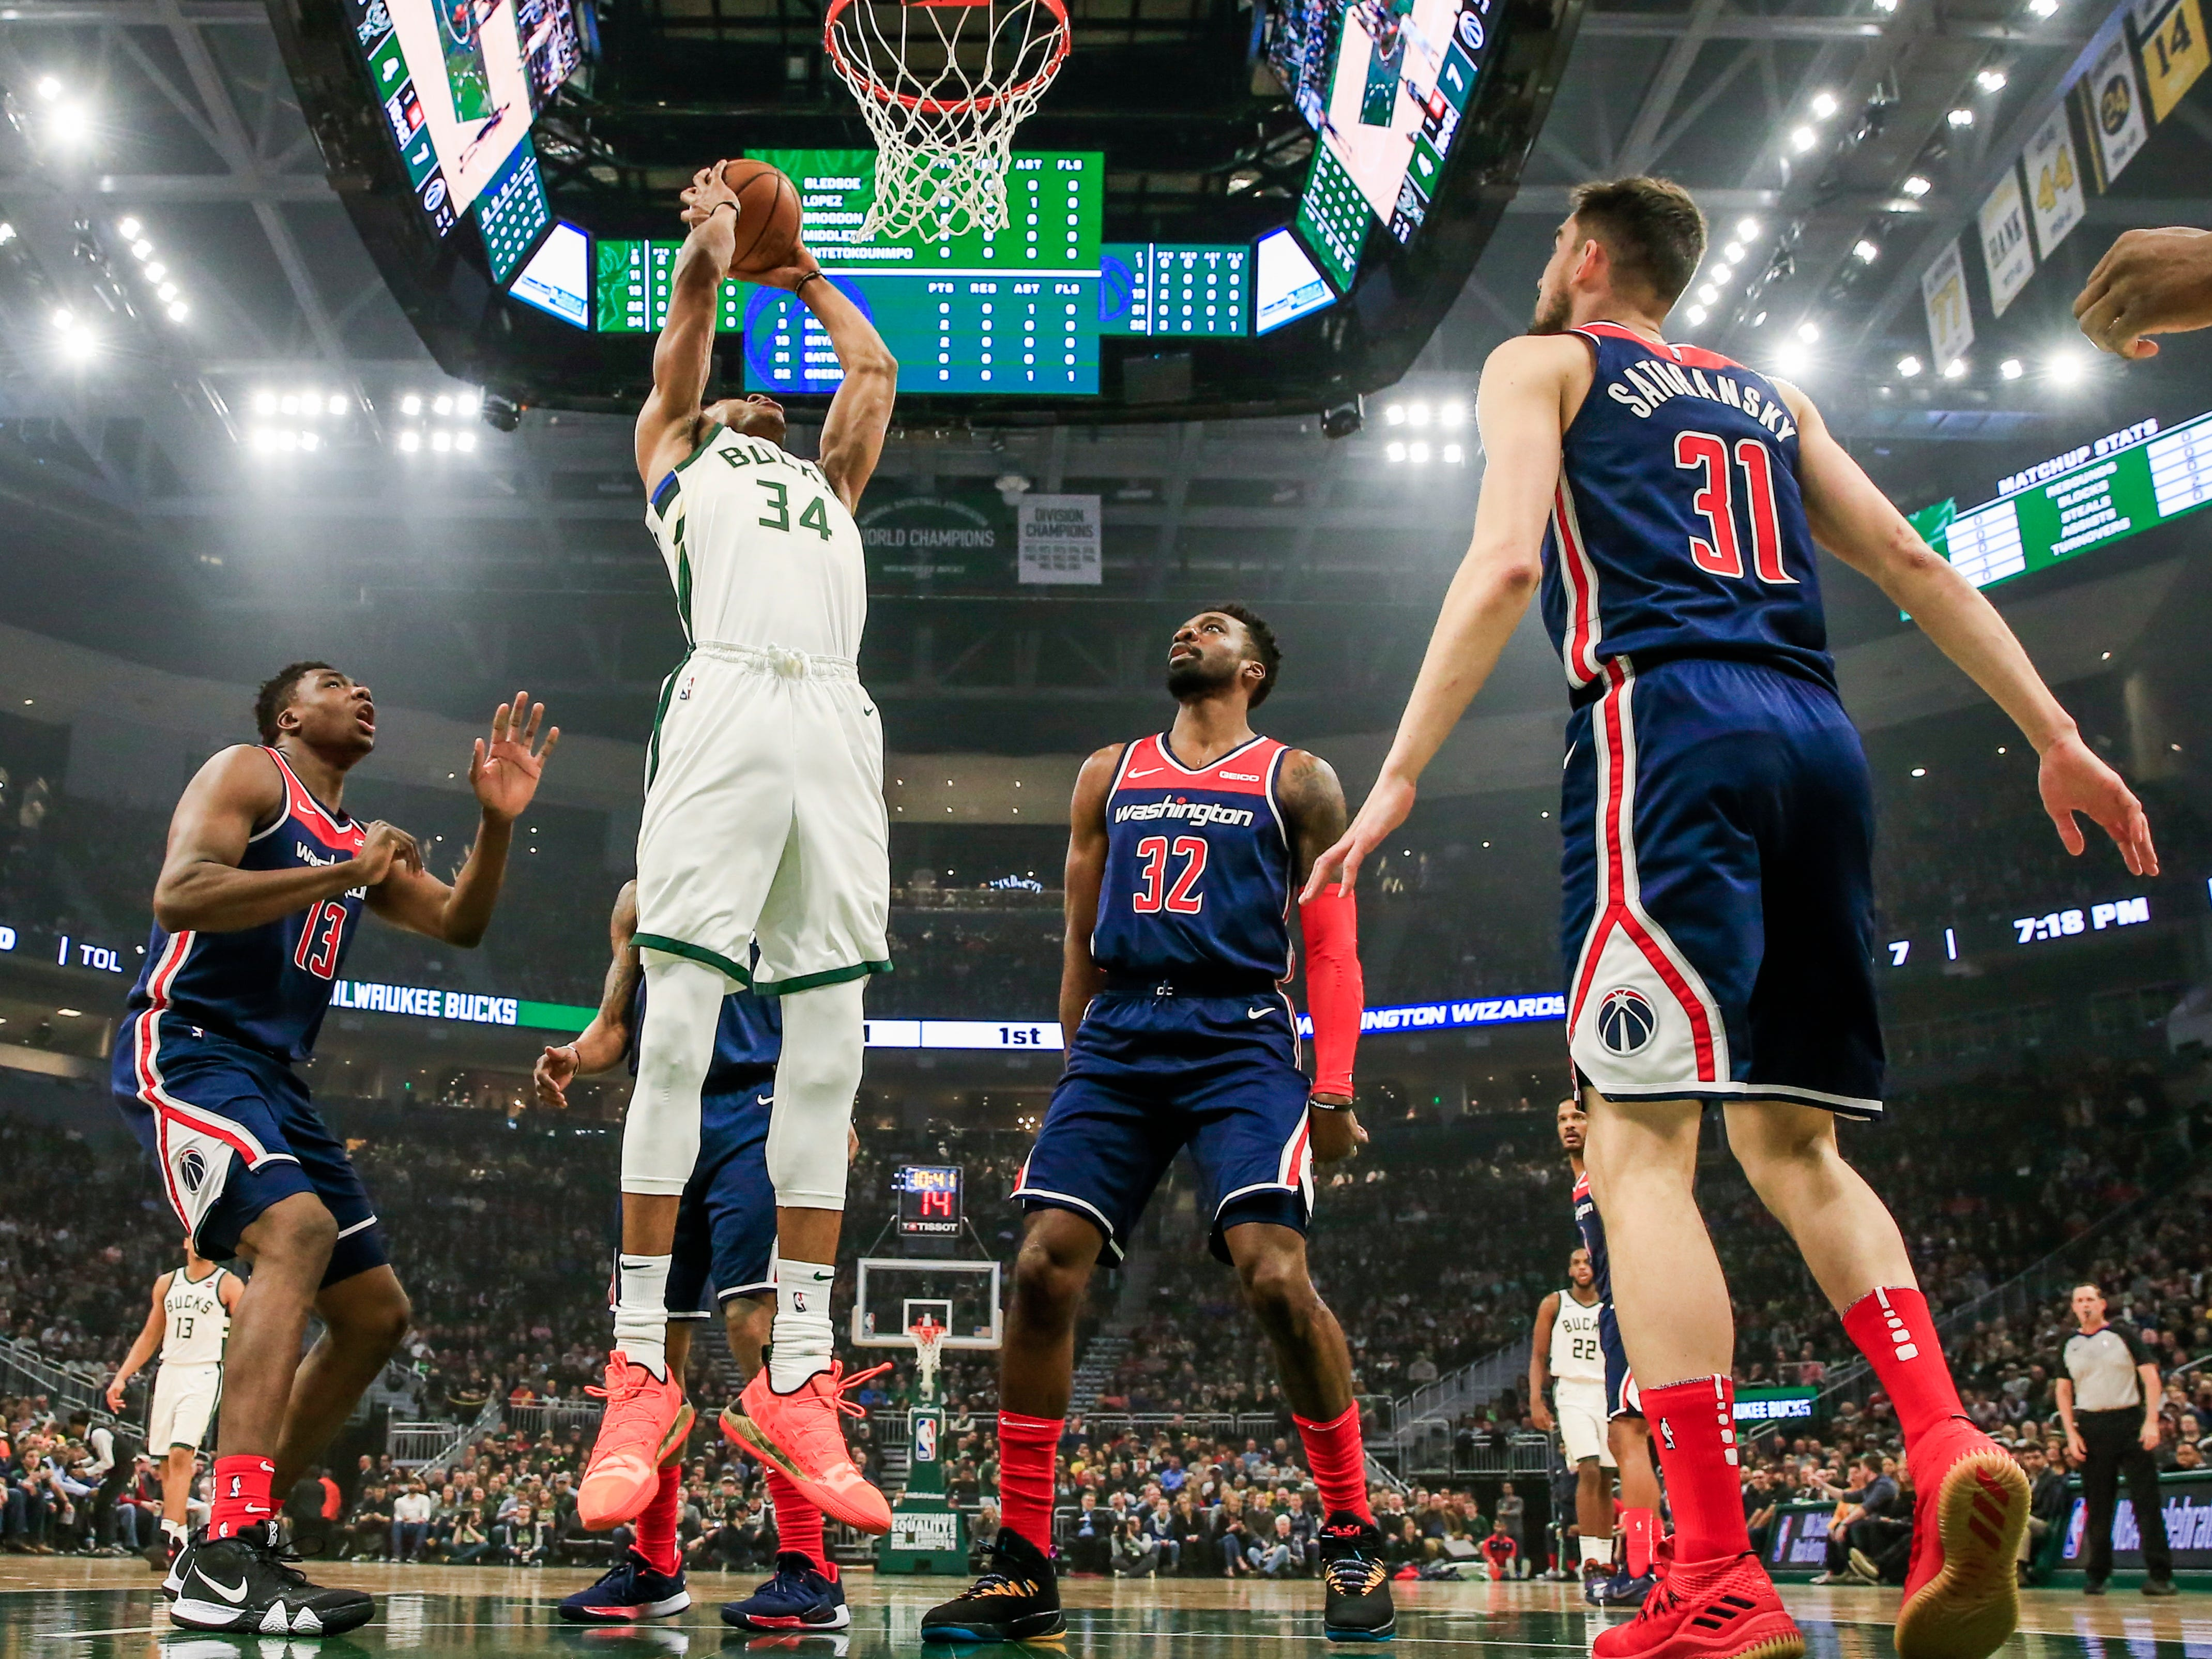 Giannis Antetokounmpo of the Bucks goes up for a shot by the basket as a quartet of Wizards defenders just stand there and watch during the first half Wednesday.